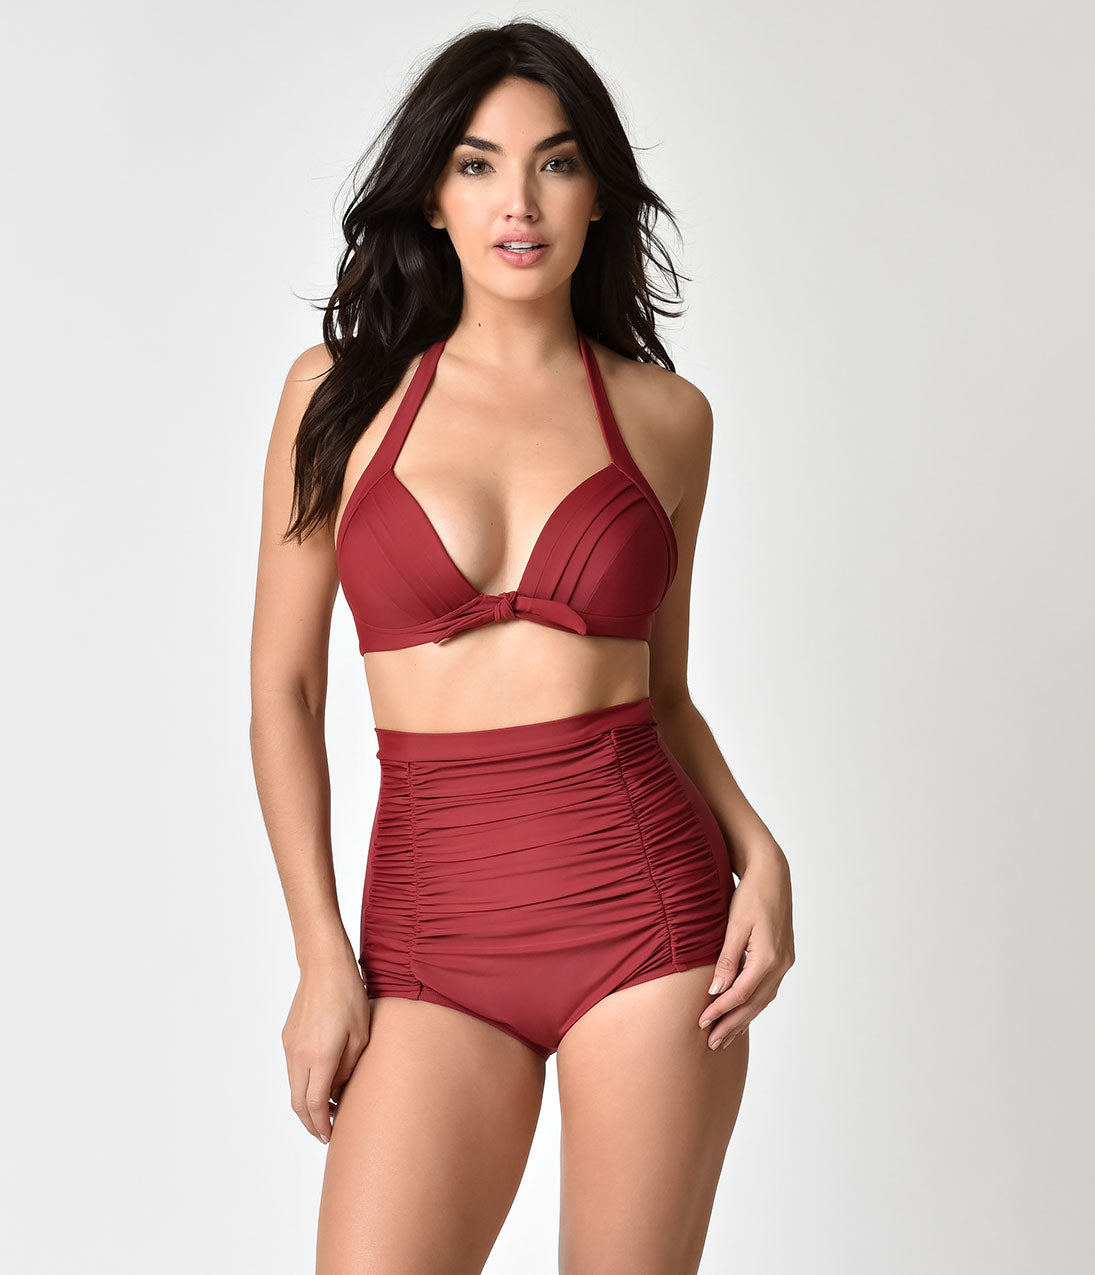 fd3a7f8aee Unique Vintage Burgundy Red Monroe Halter Swim Top